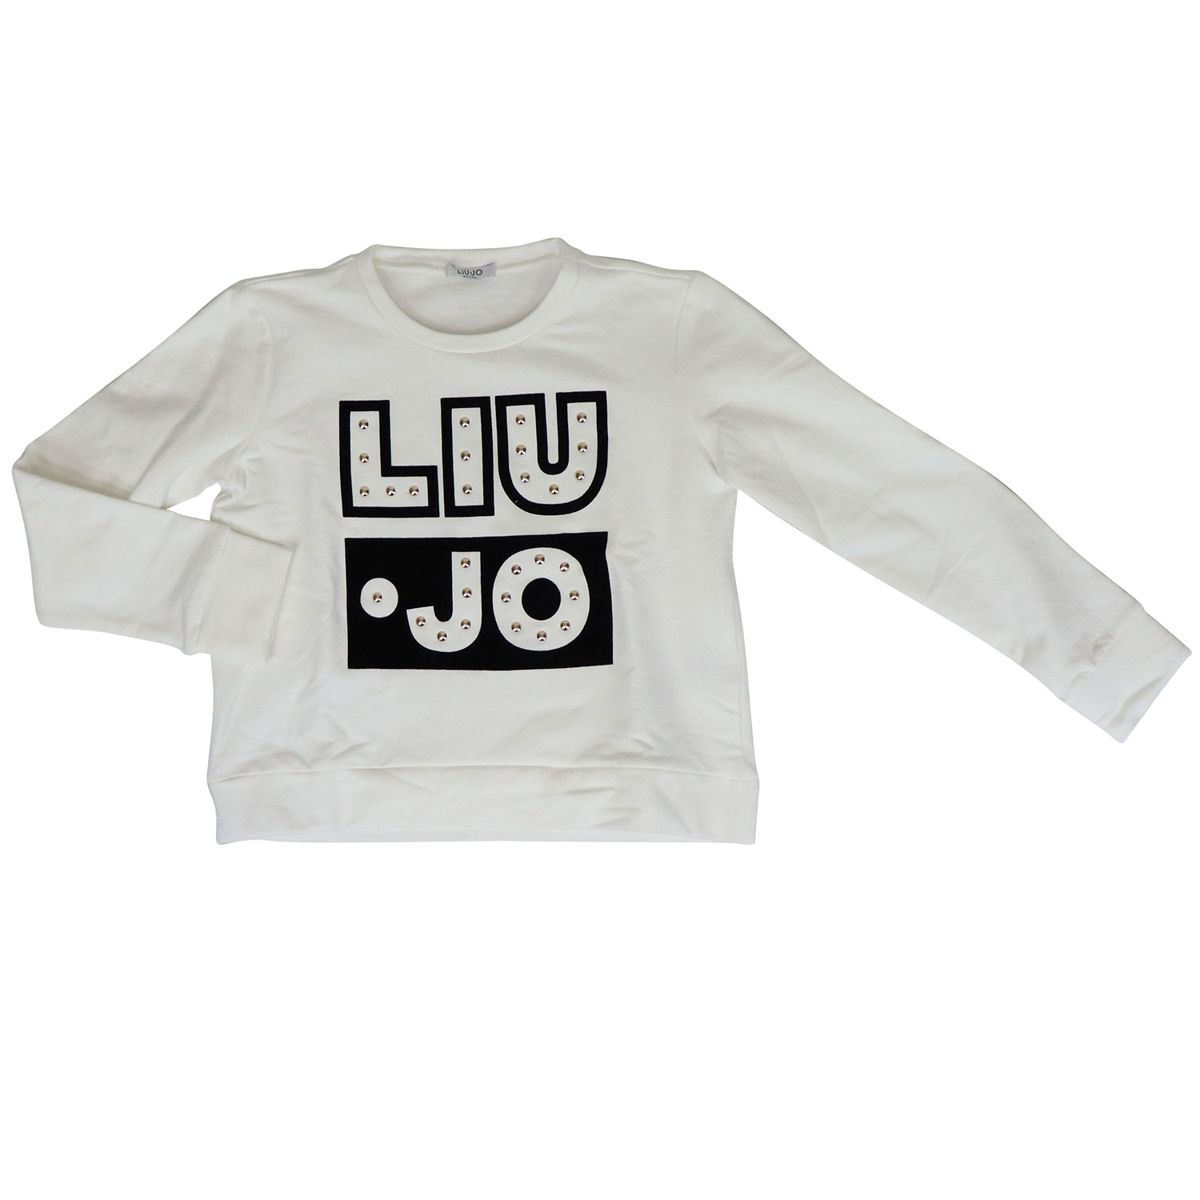 Crewneck sweatshirt with logo and applications White Liu Jo